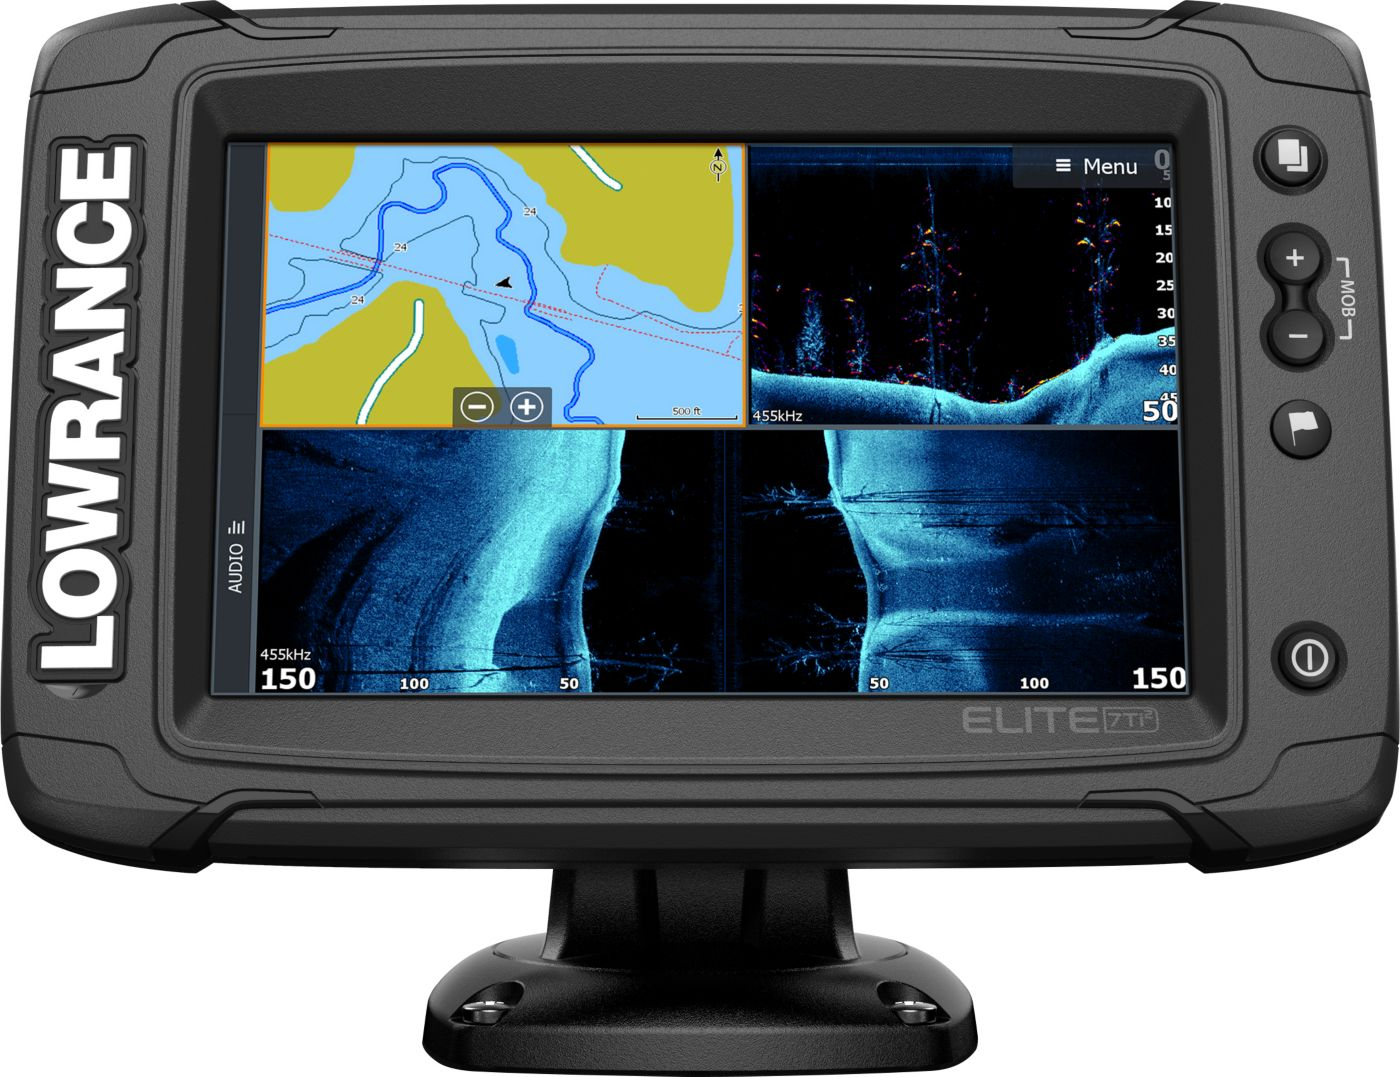 Lowrance Elite-7 Ti2 GPS Fish Finder with HDI Transducer (000-14634-001)